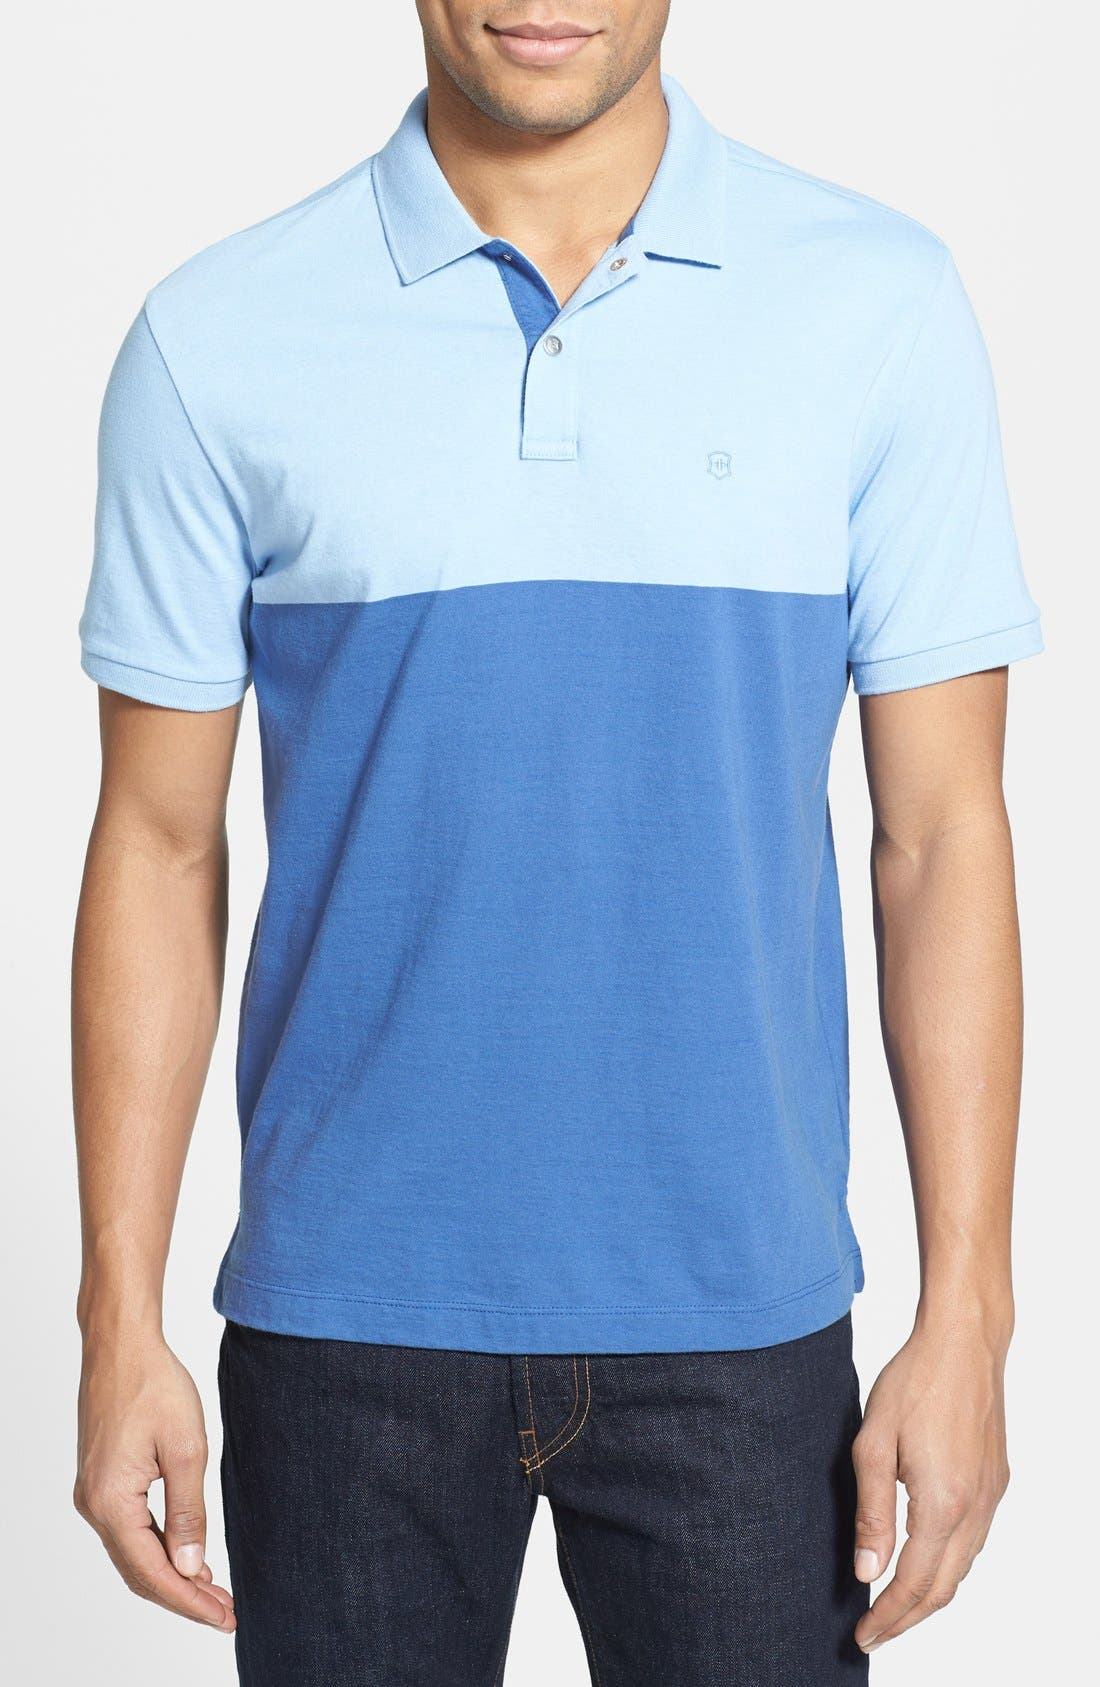 Alternate Image 1 Selected - Victorinox Swiss Army® 'Aster' Tailored Fit Colorblock Polo